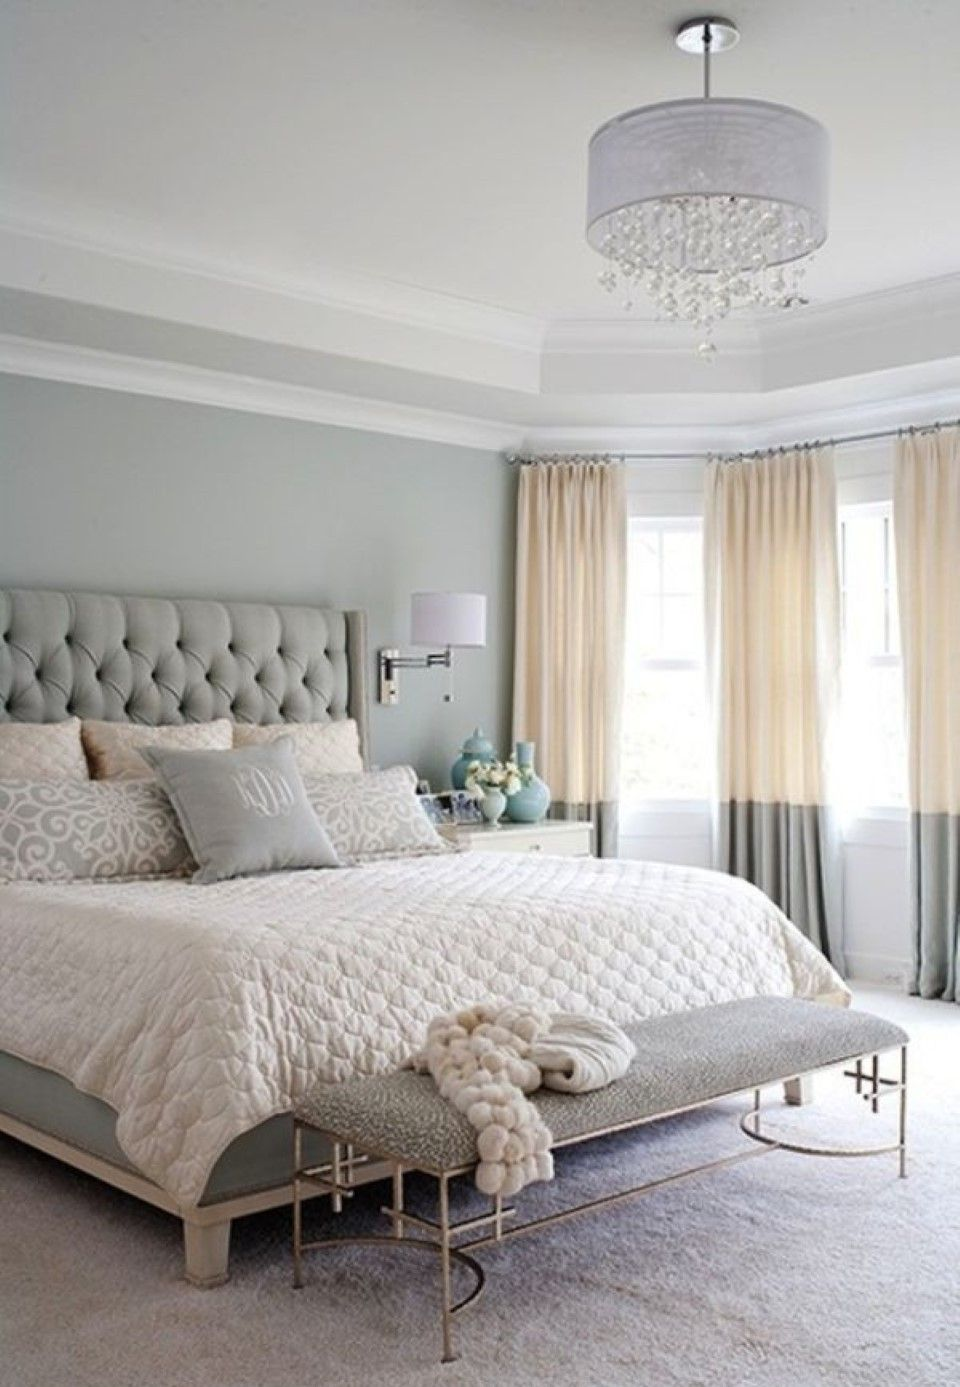 Awesome Two Tone Gray Cream Window Curtains Paired With White Bedding Set Also Tall Tufted Headboard Idea